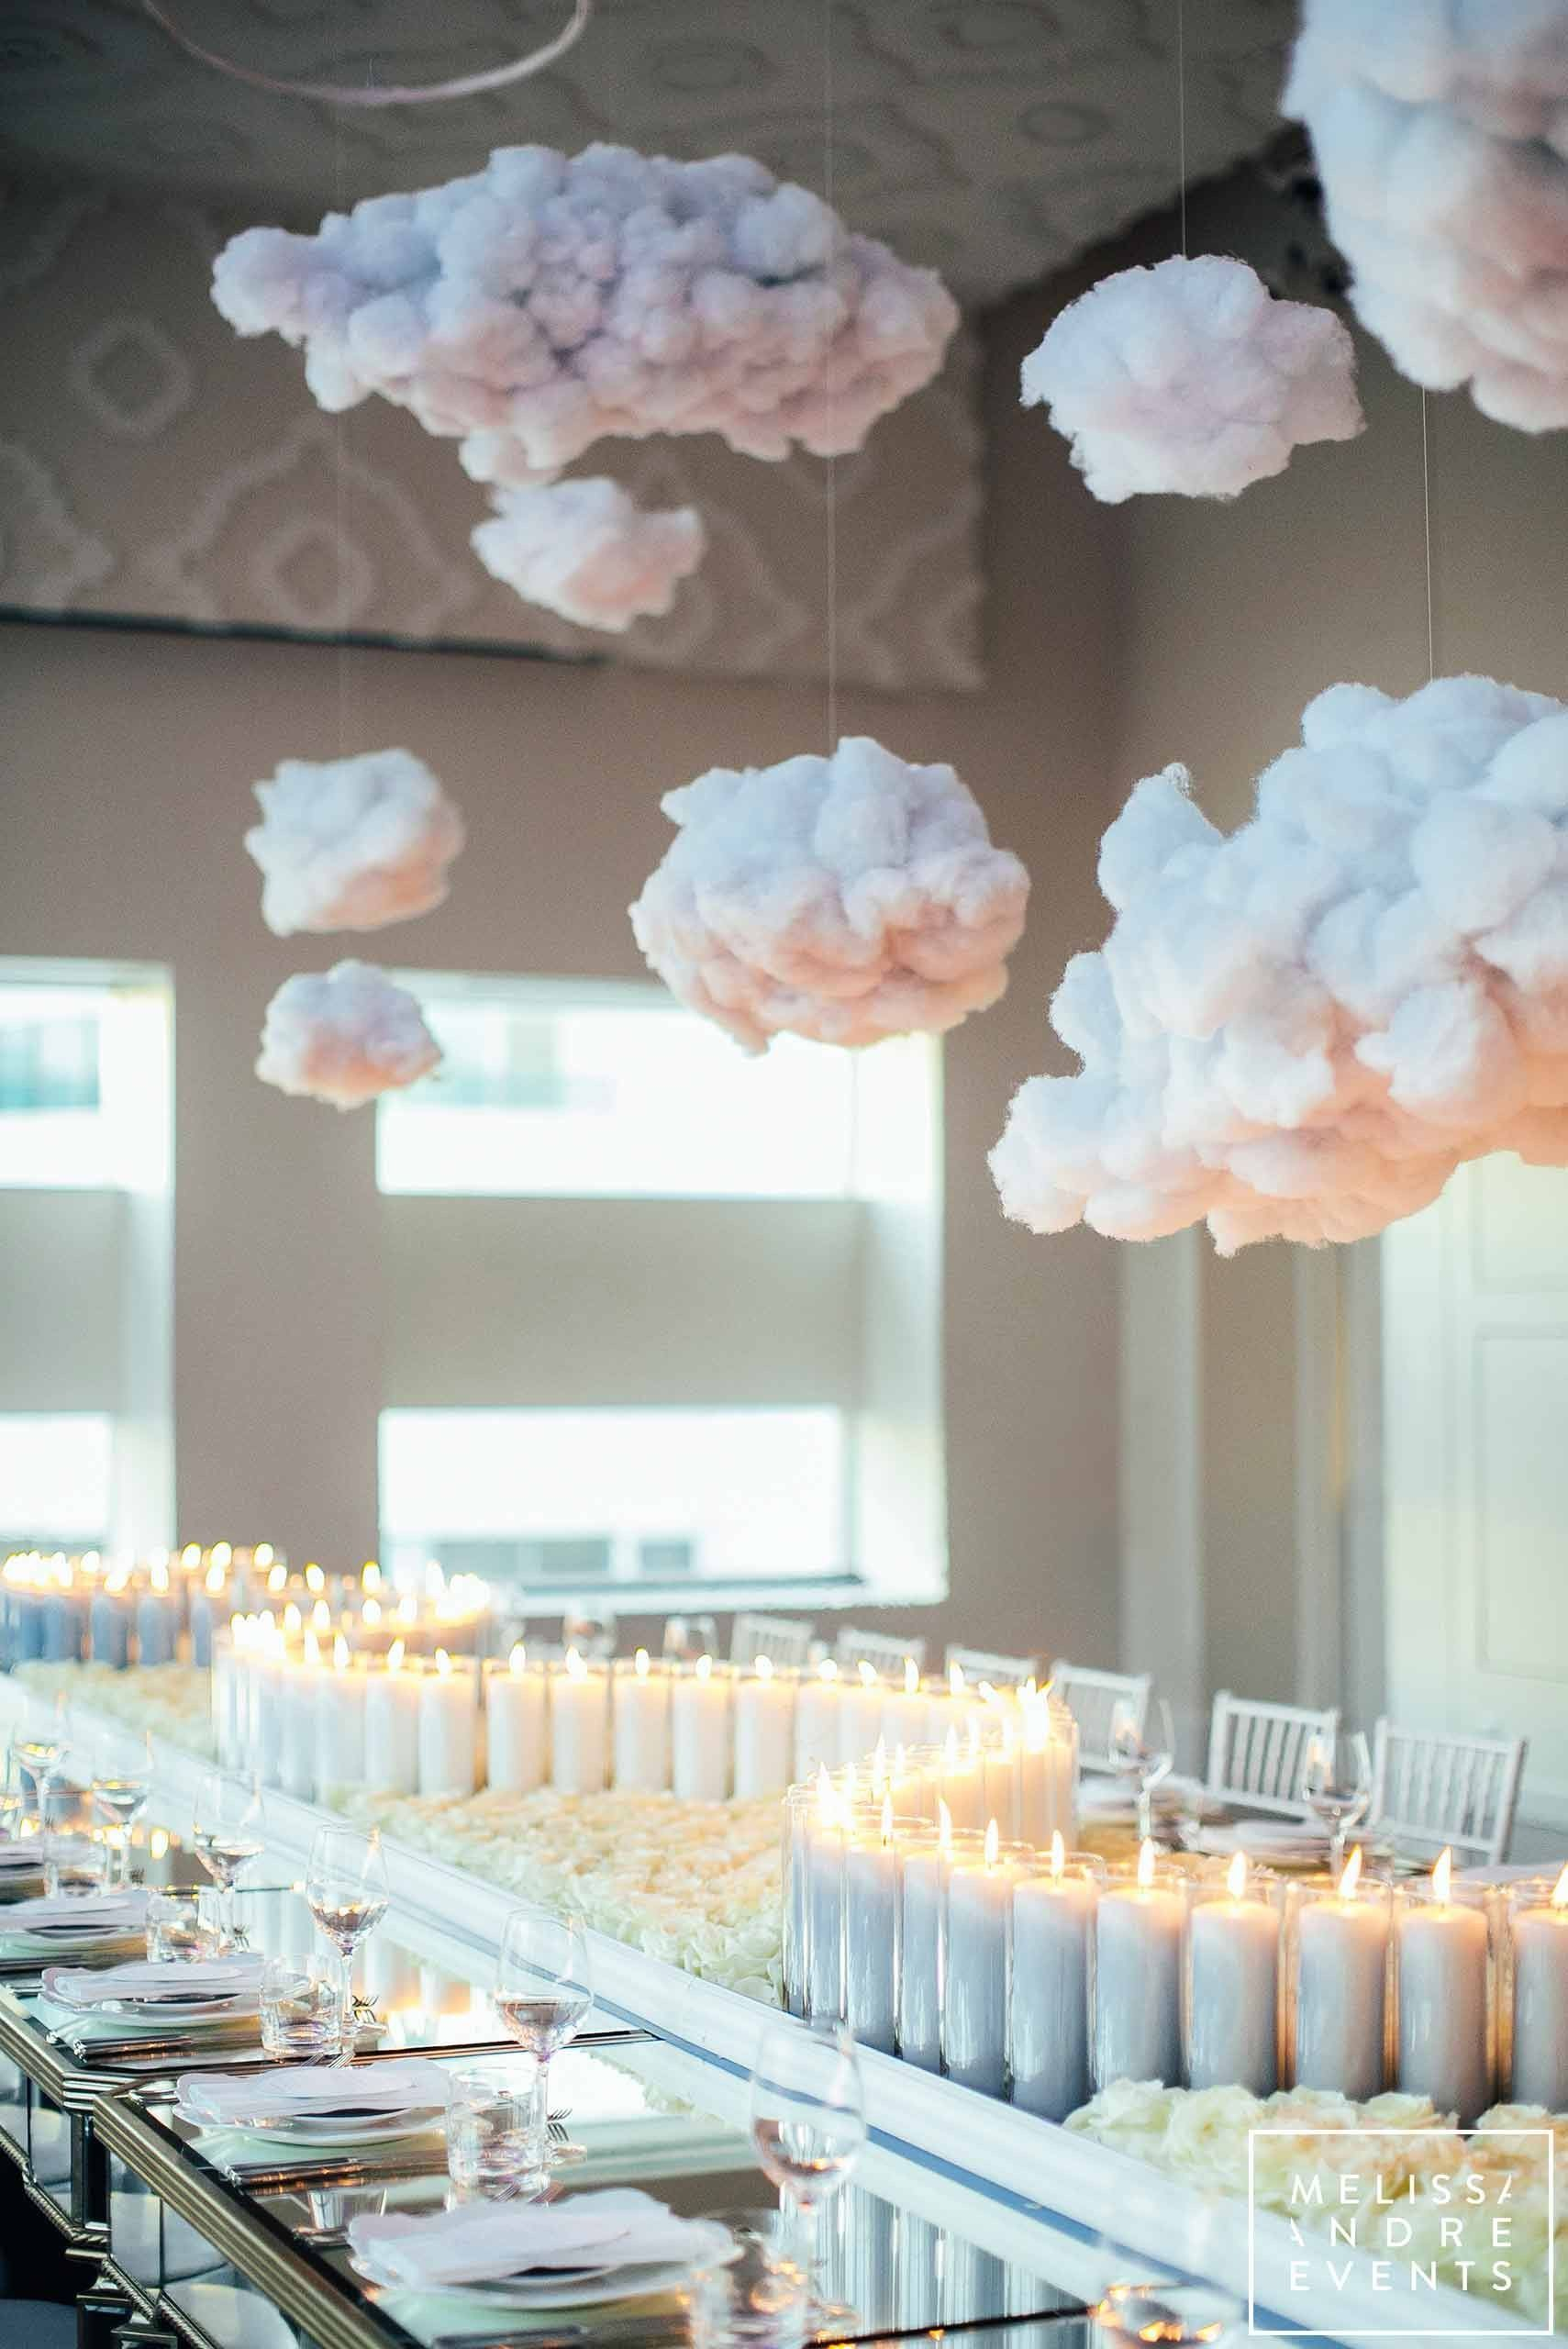 Baby Boy Shower Centerpieces Ideas Lovely Up In the Clouds Birthday Party events